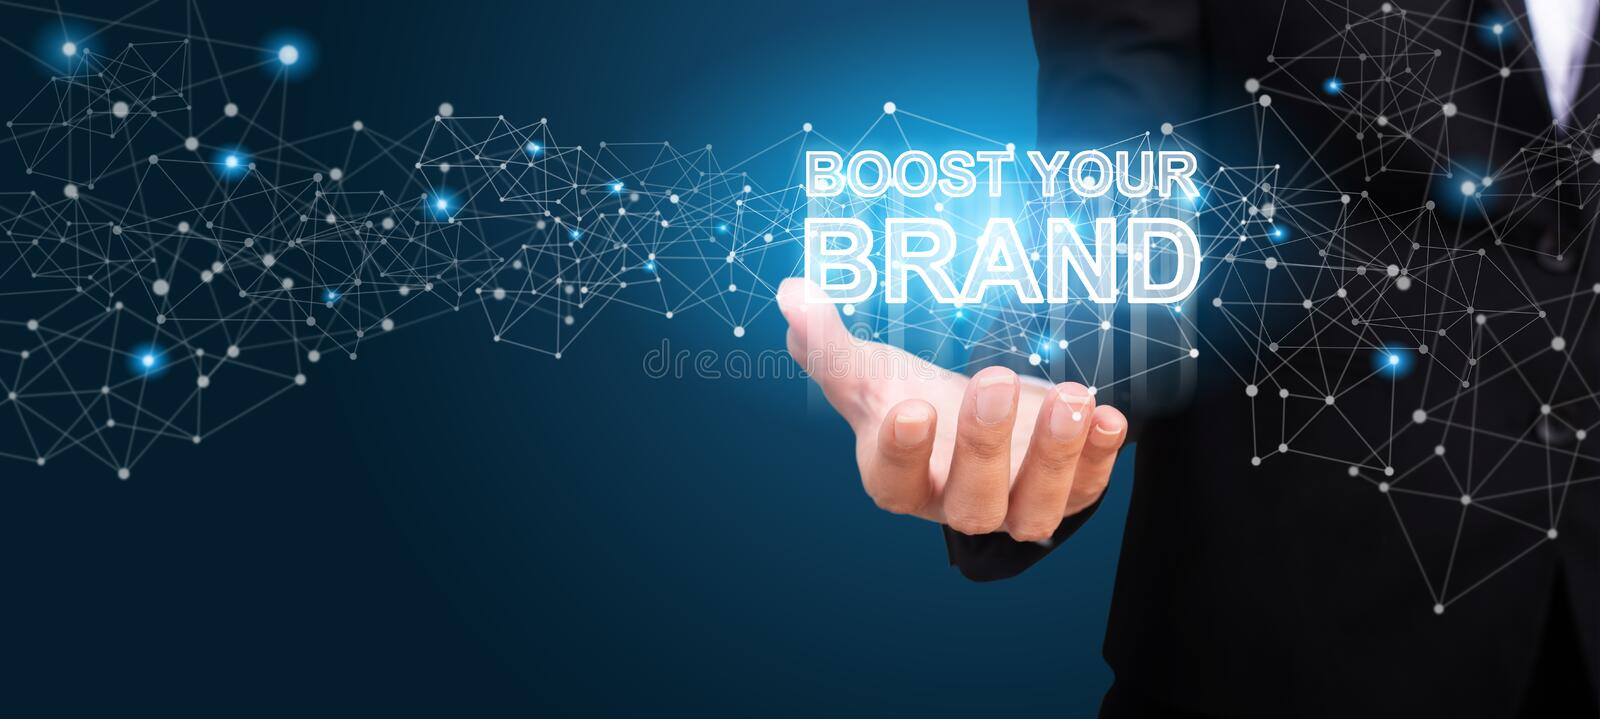 Boost Your Brand in the hand of business. Boost Your Brand concept.  royalty free stock photo